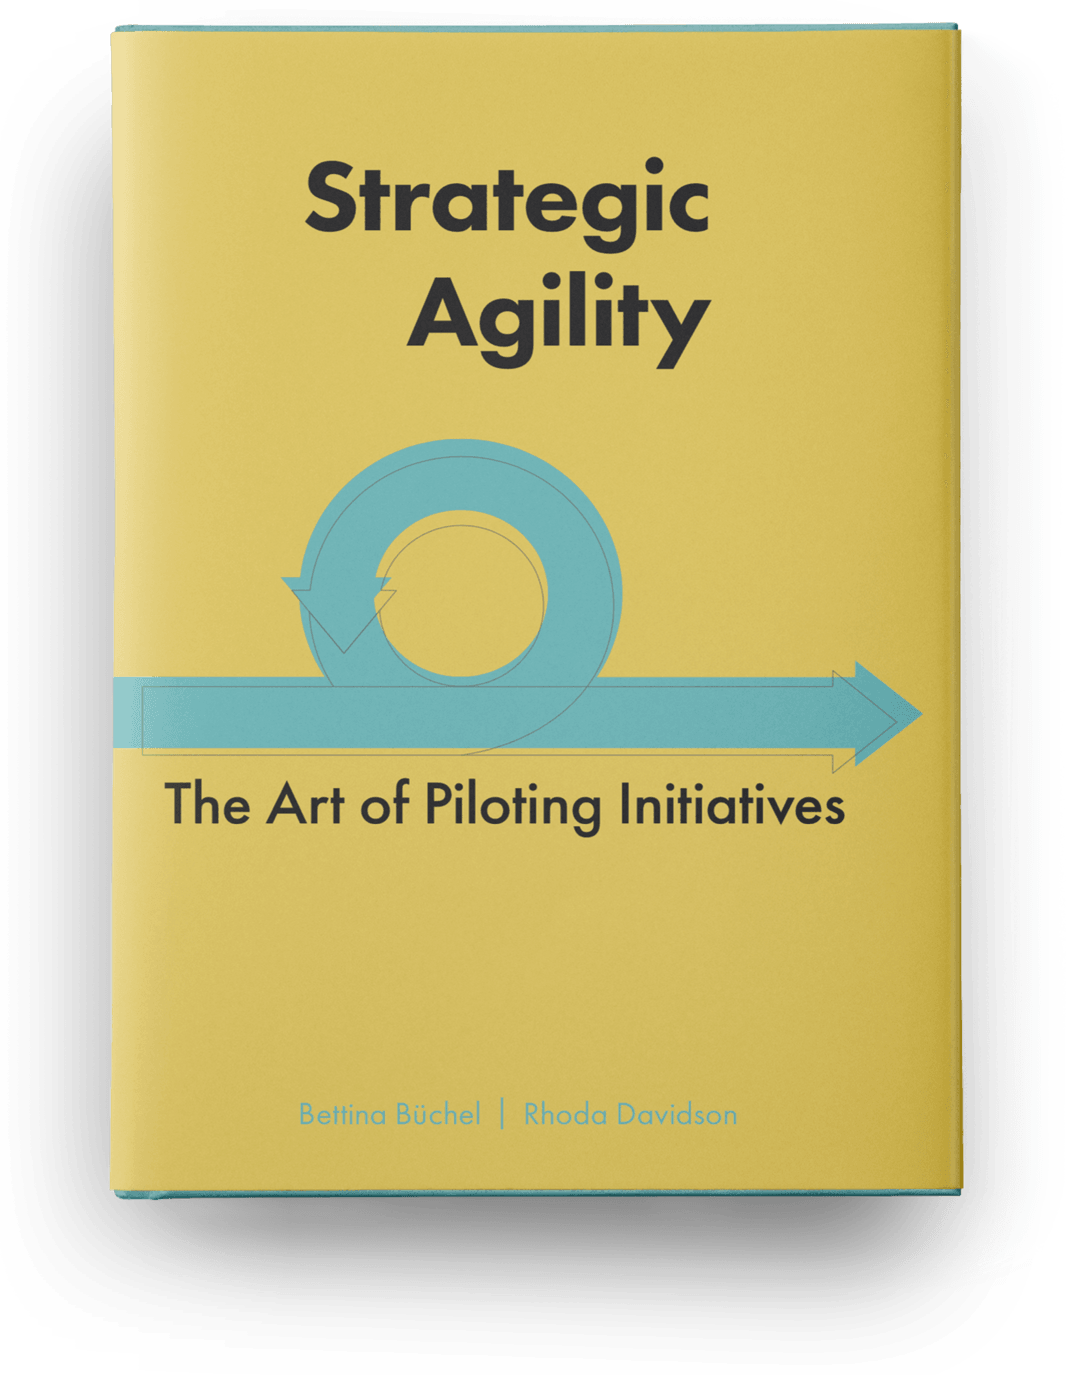 Strategic Agility: The Art of Piloting Initiatives